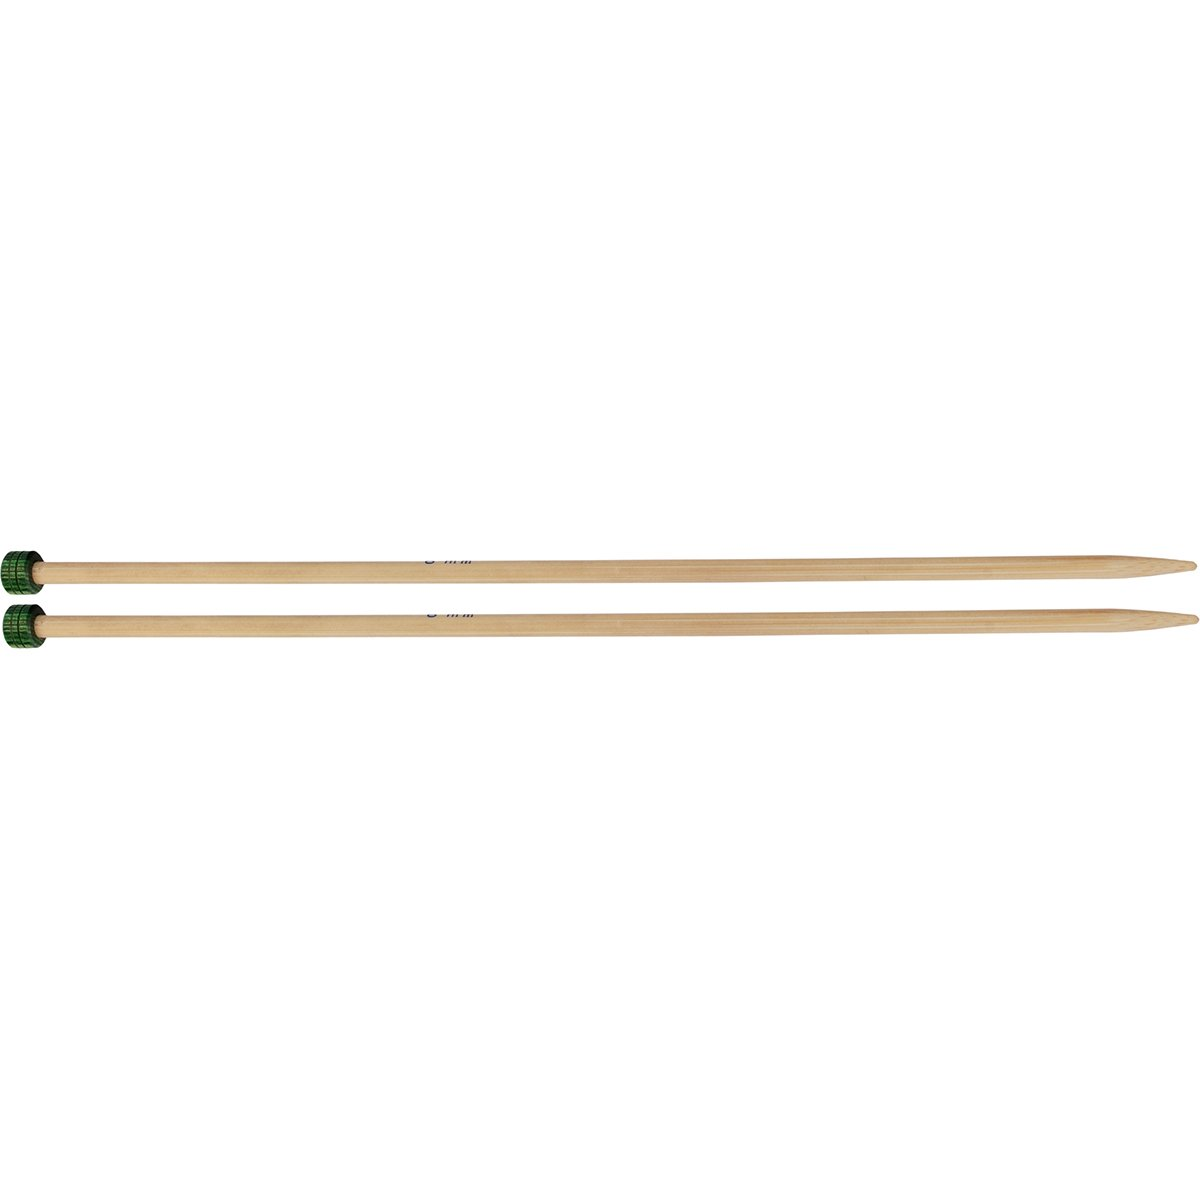 Knitter's Pride Bamboo Single Pointed Needles 10-inch Size 6/4 mm Knitter's Pride KP900299